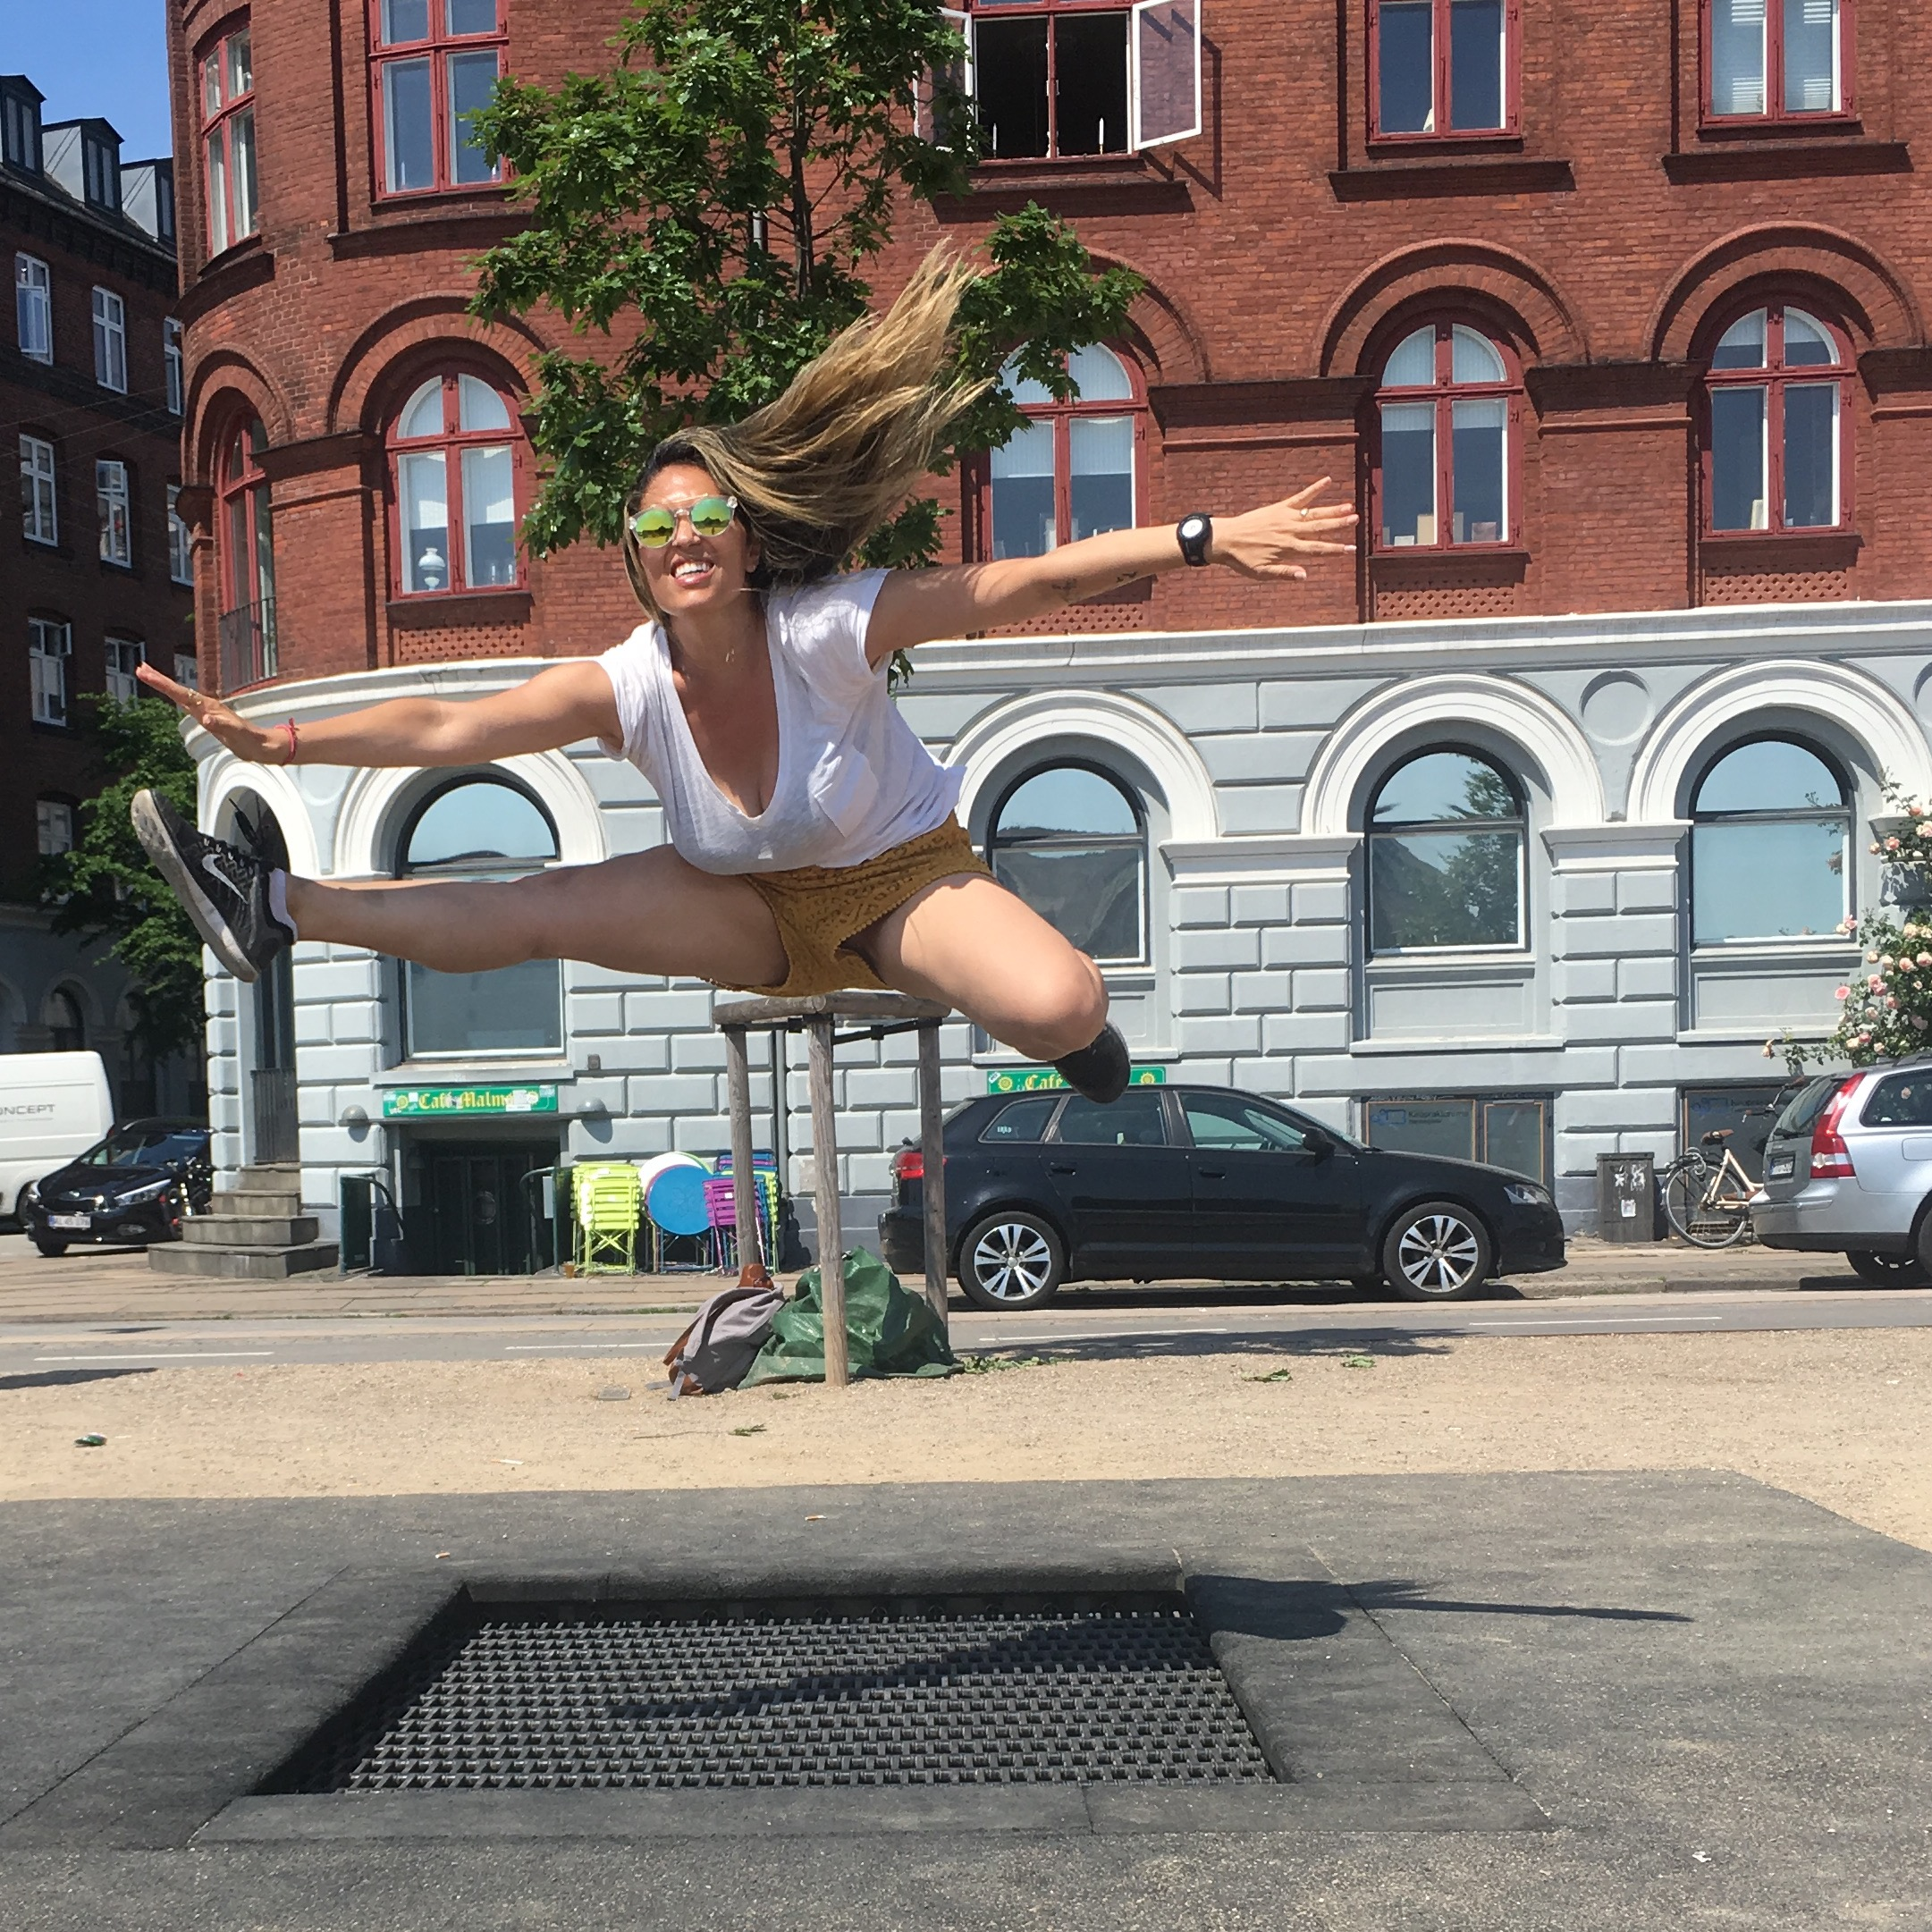 the city has public trampolines!